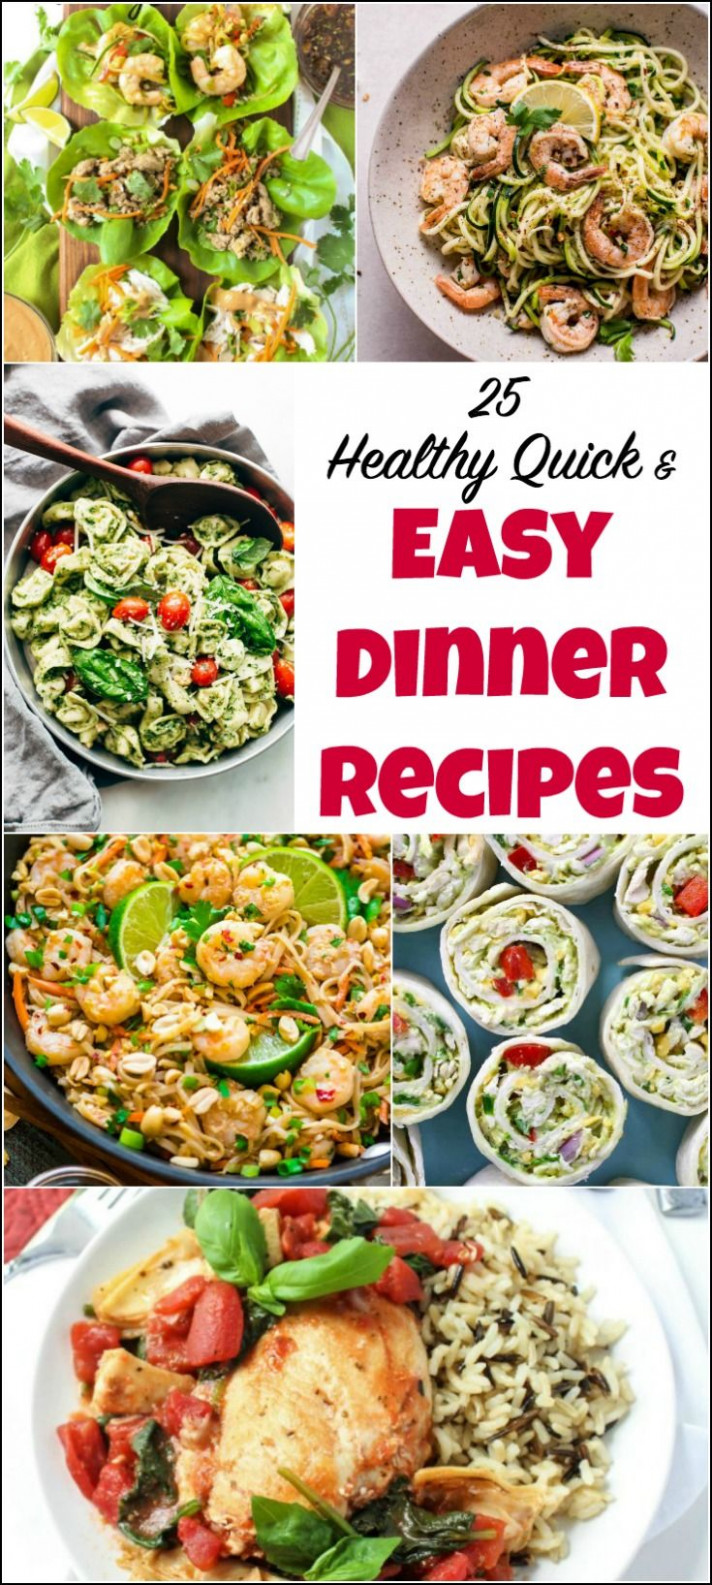 15 Healthy Quick and Easy Dinner Recipes | Easy Healthy ..